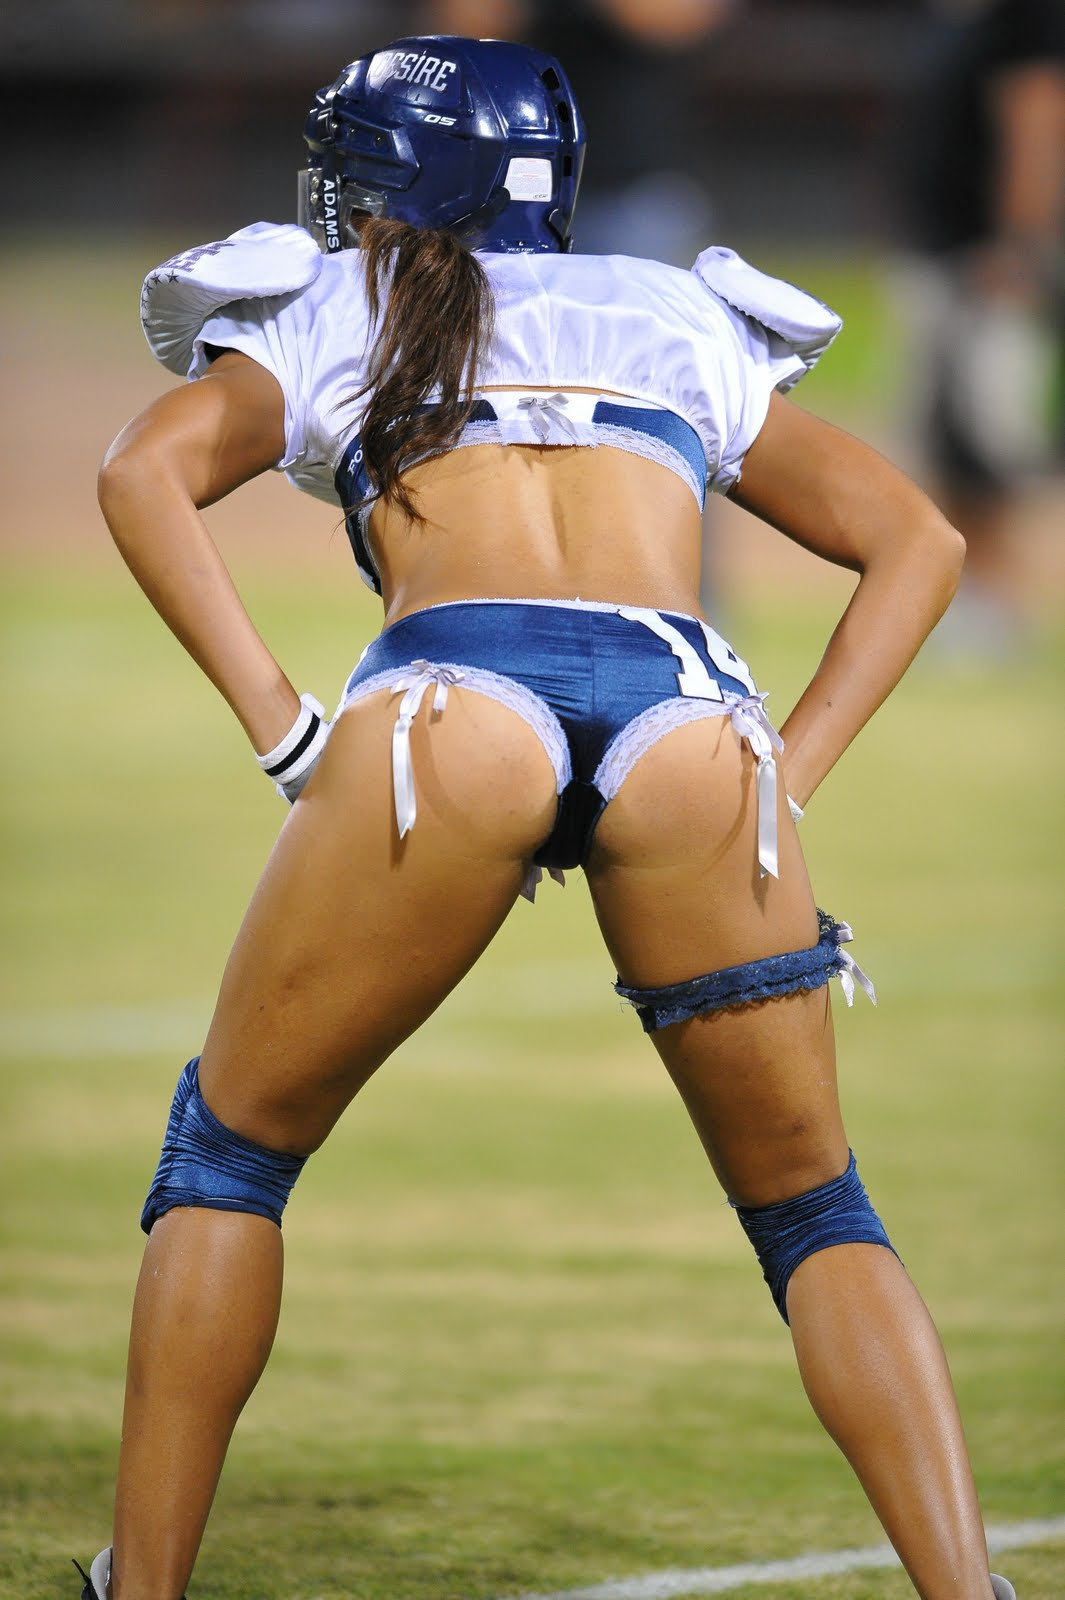 Lingerie+Football+League+-9.jpg